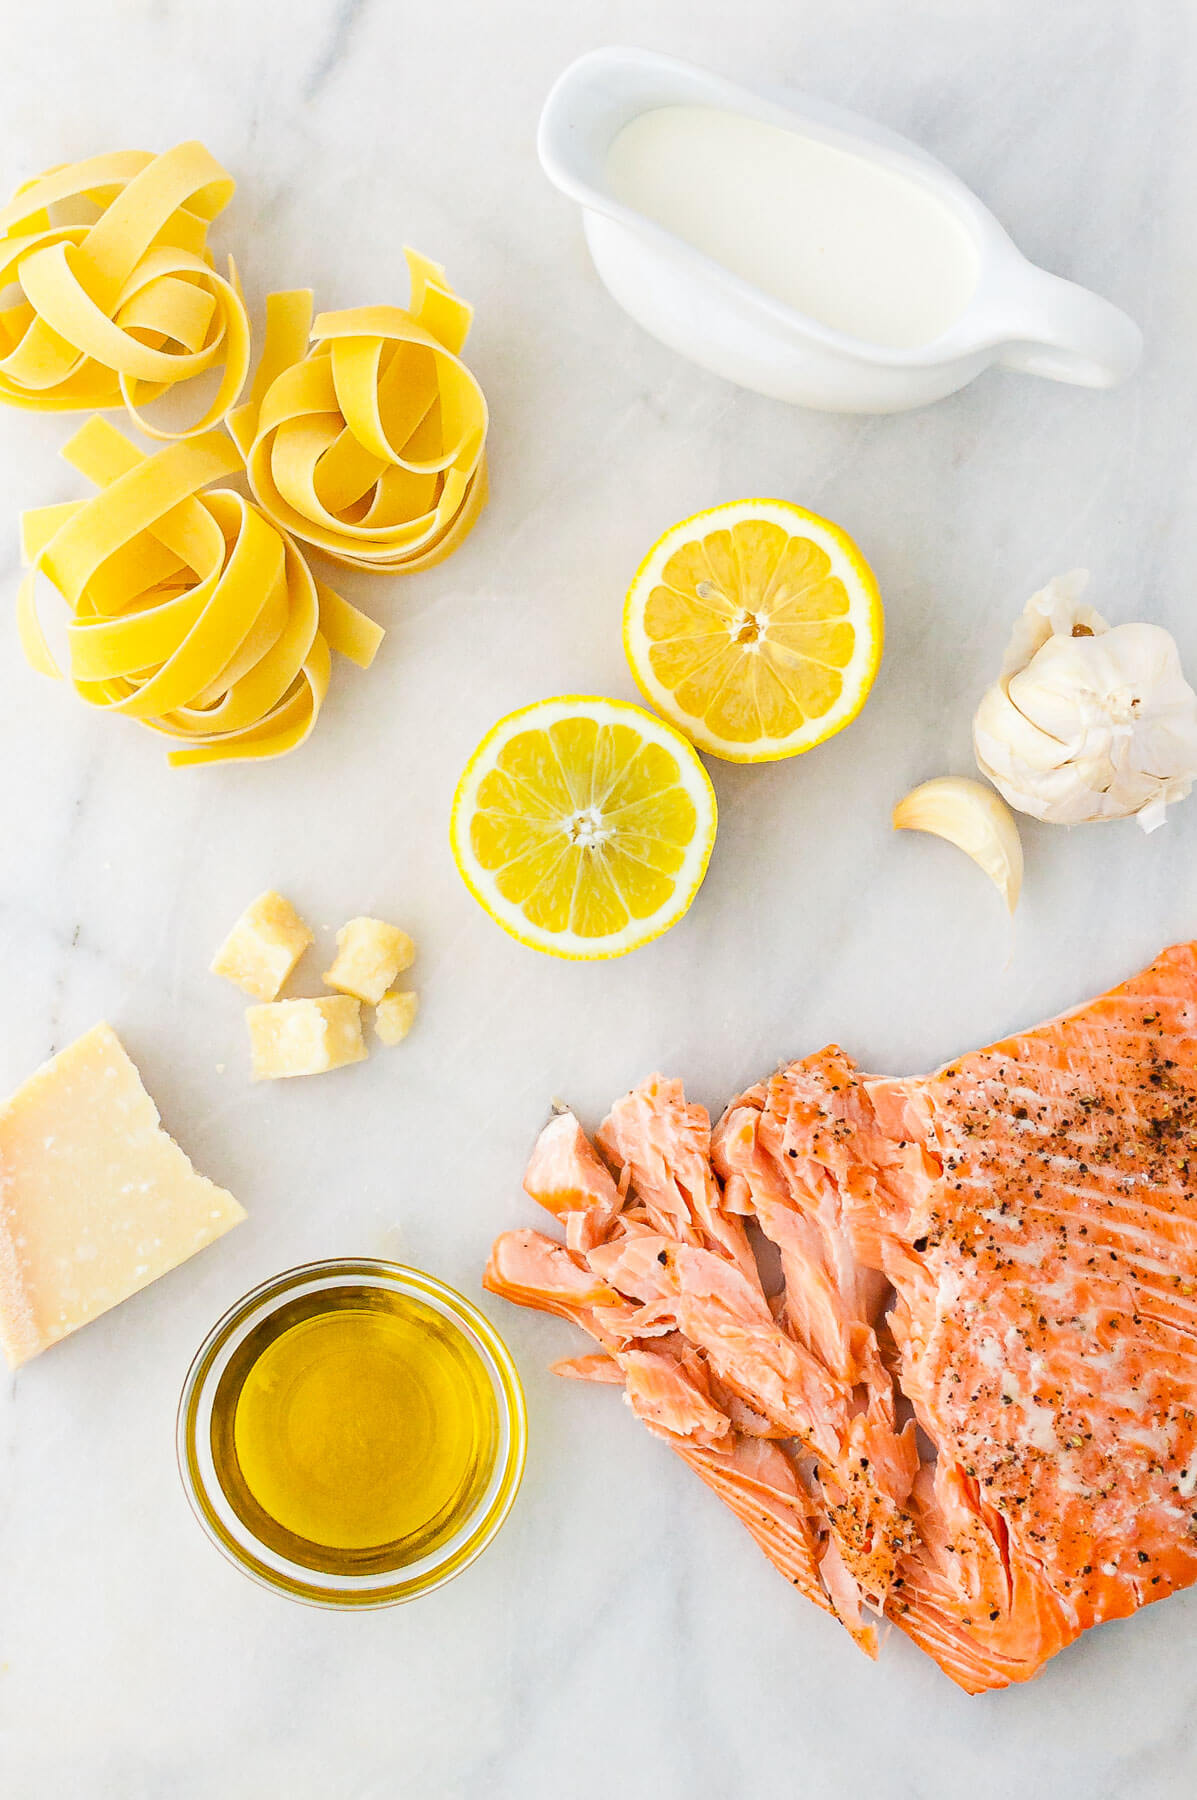 Ingredients for lemon pasta with salmon - dried pappardelle, cream, parmesan cheese, lemon, garlic, olive oil, and roasted salmon.